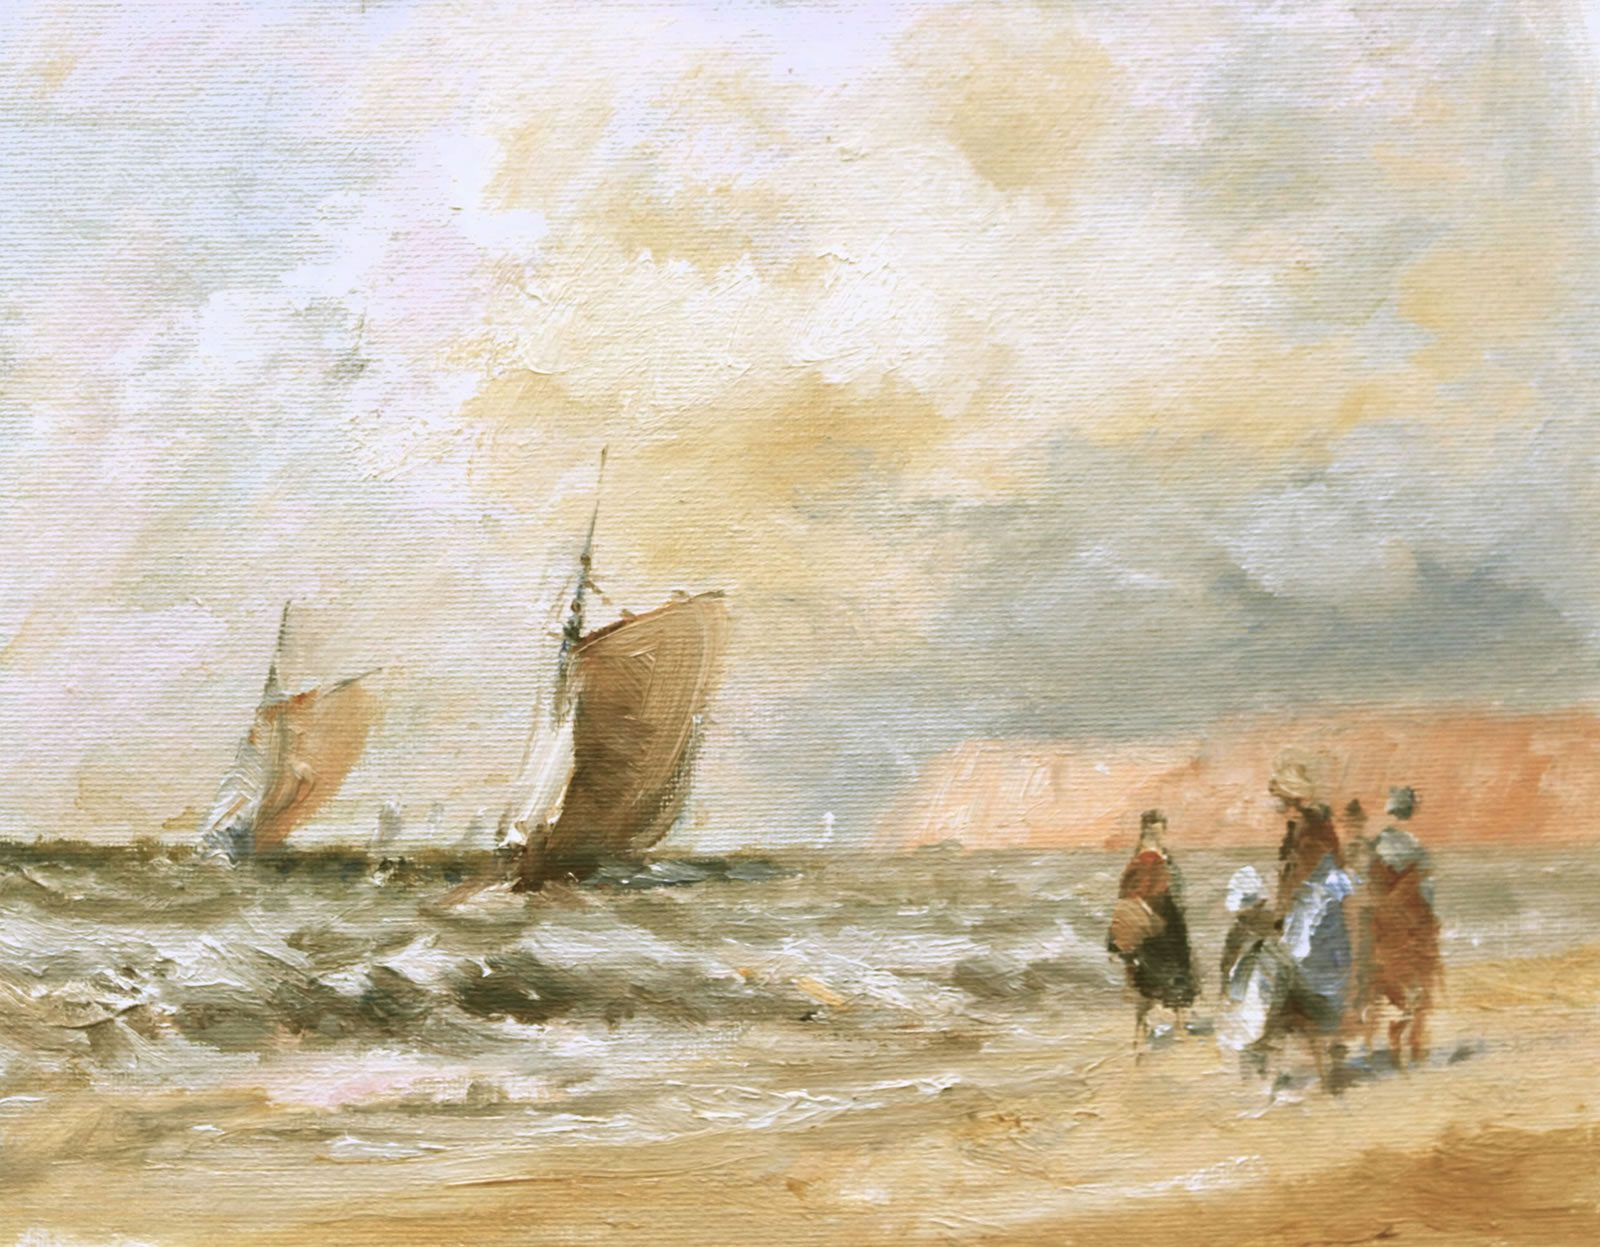 Romantic seascape painted by Stewart Taylor